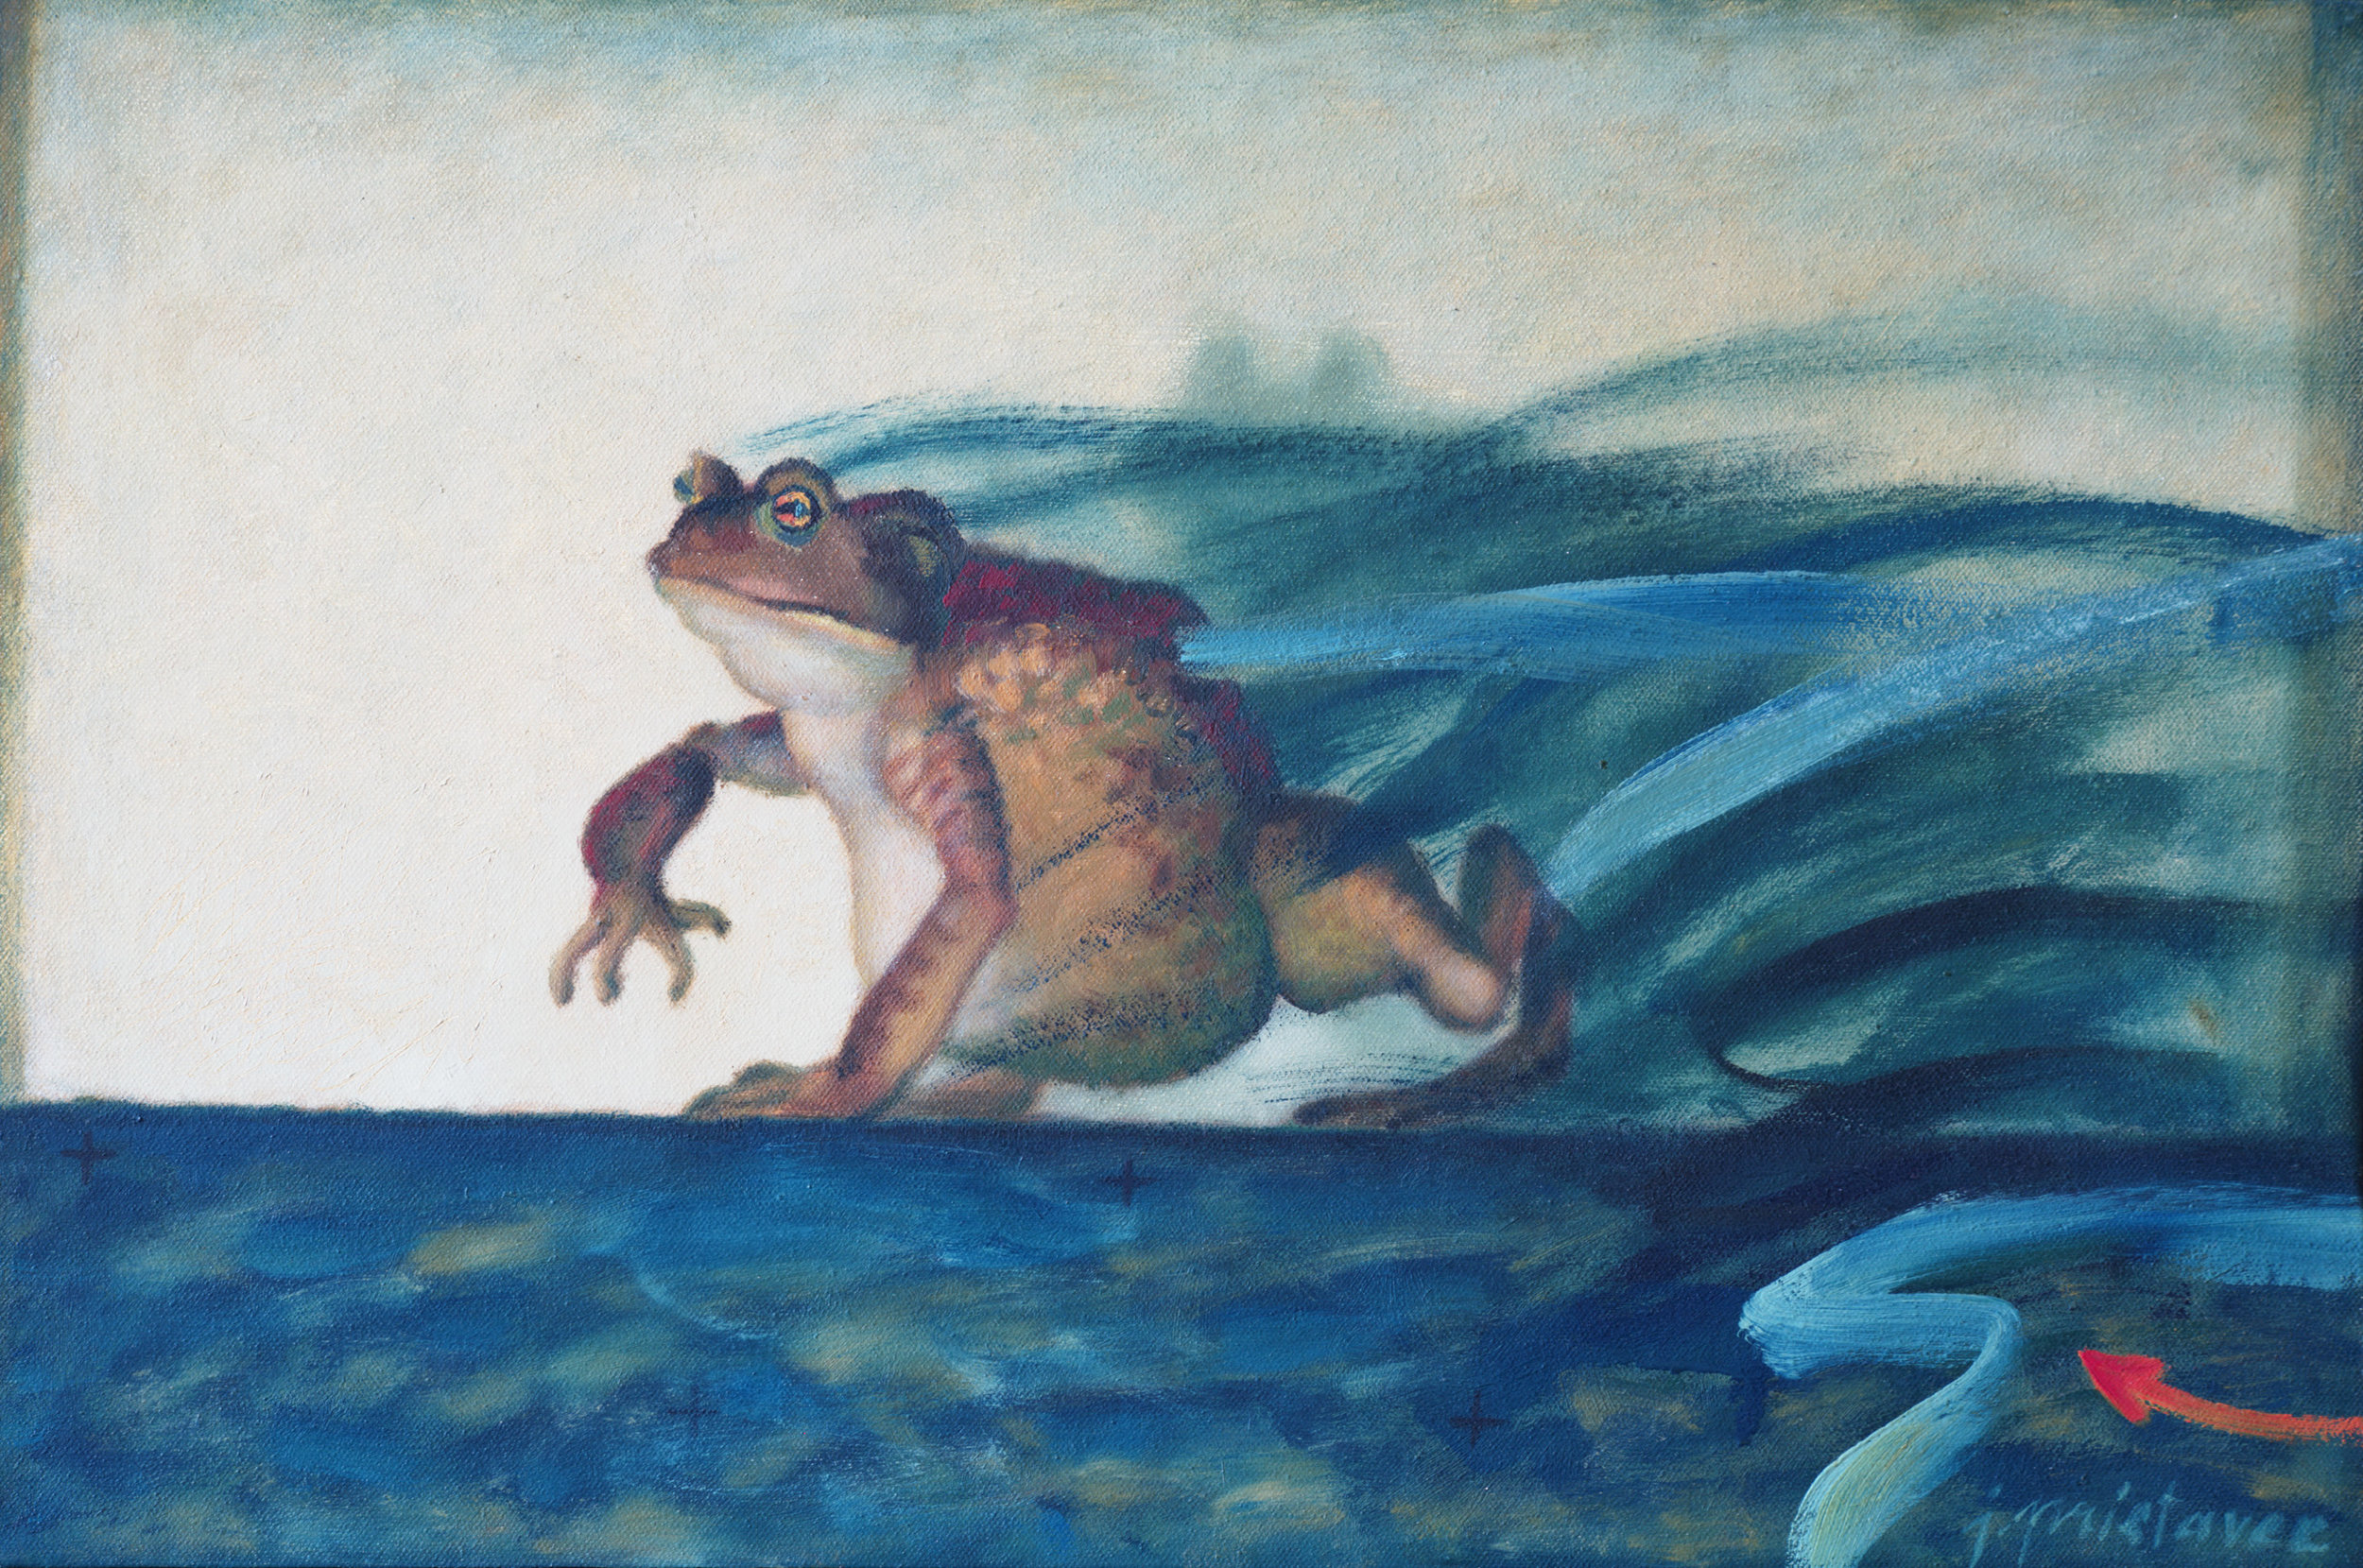 Frog  / 1975 / oil on canvas / 60 x 40 cm